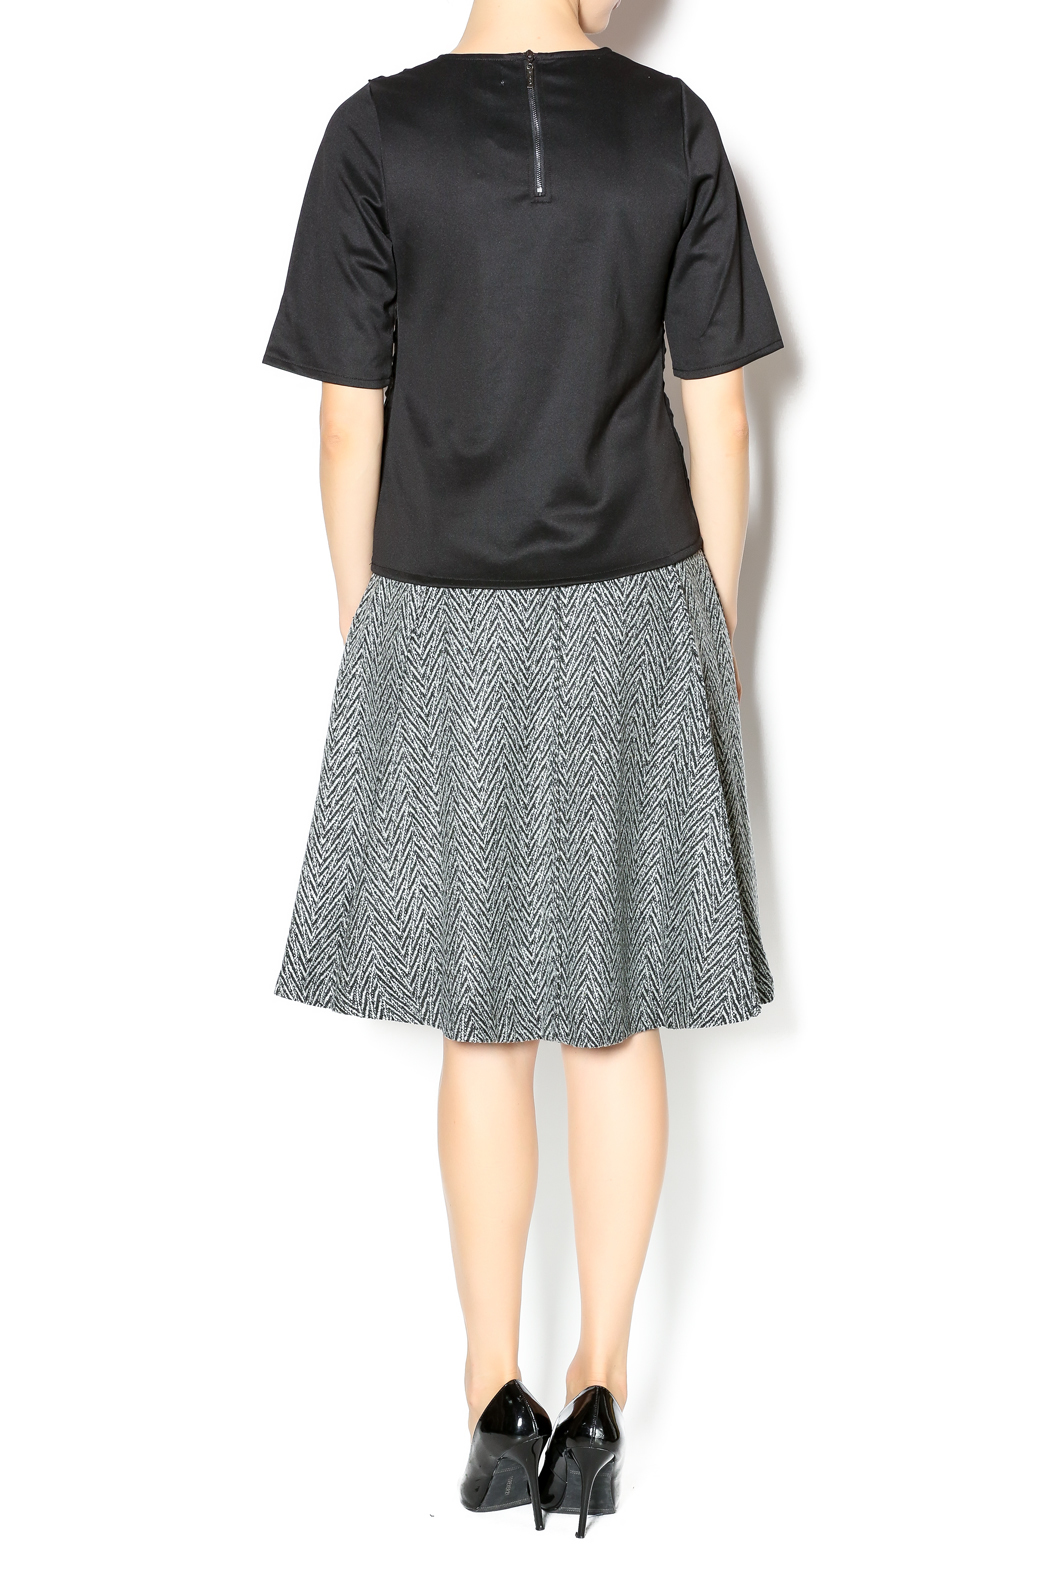 junee Wool Chevron Skirt - Side Cropped Image